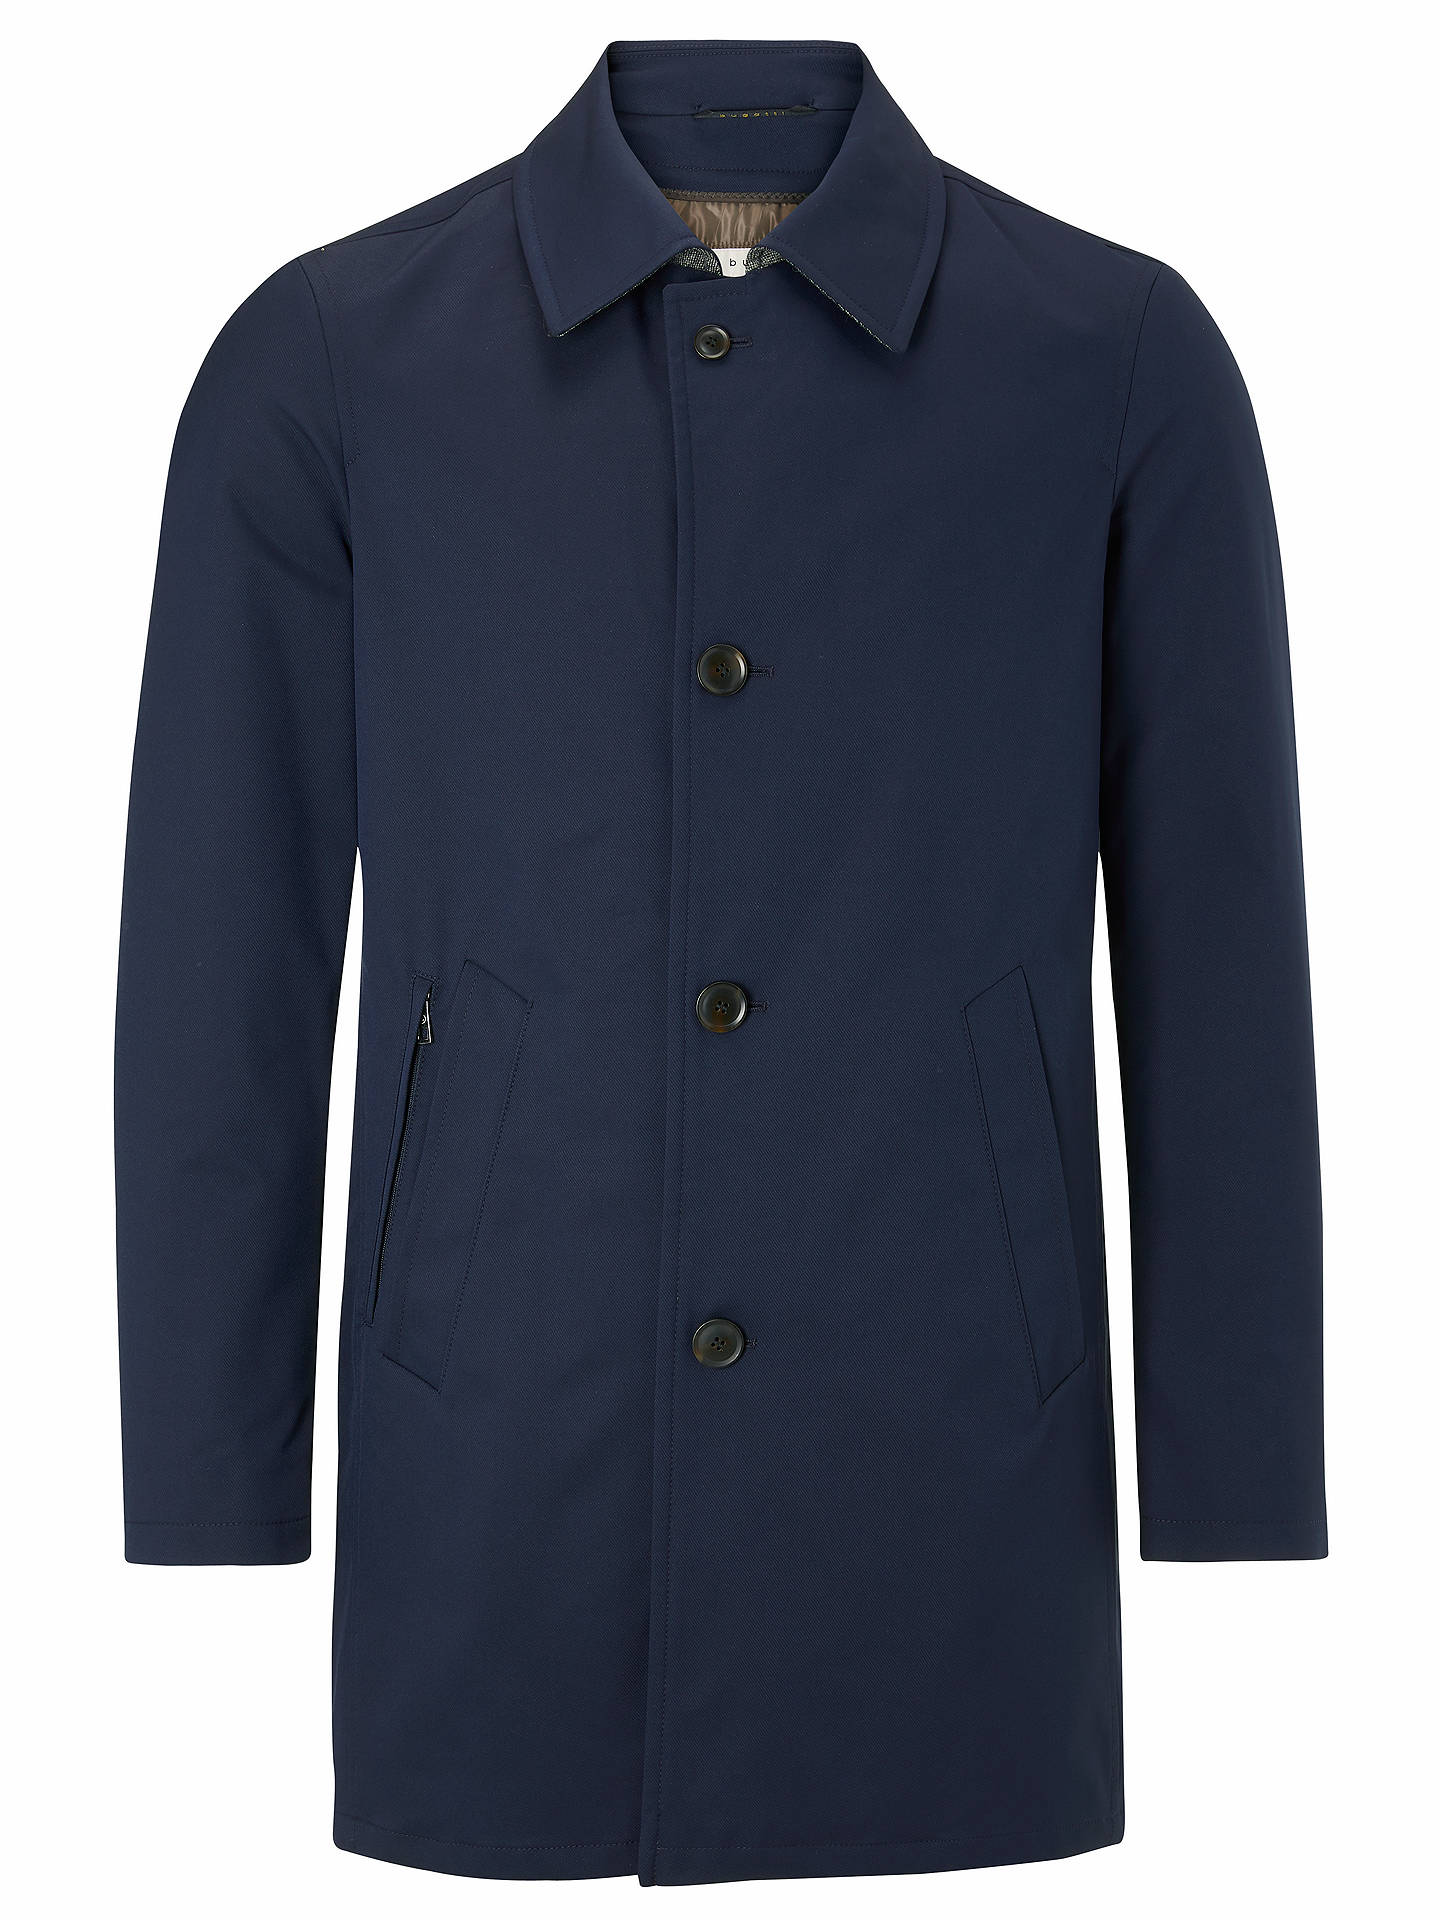 BuyBugatti Long Line Button Up Mac, Navy, 44R Online at johnlewis.com